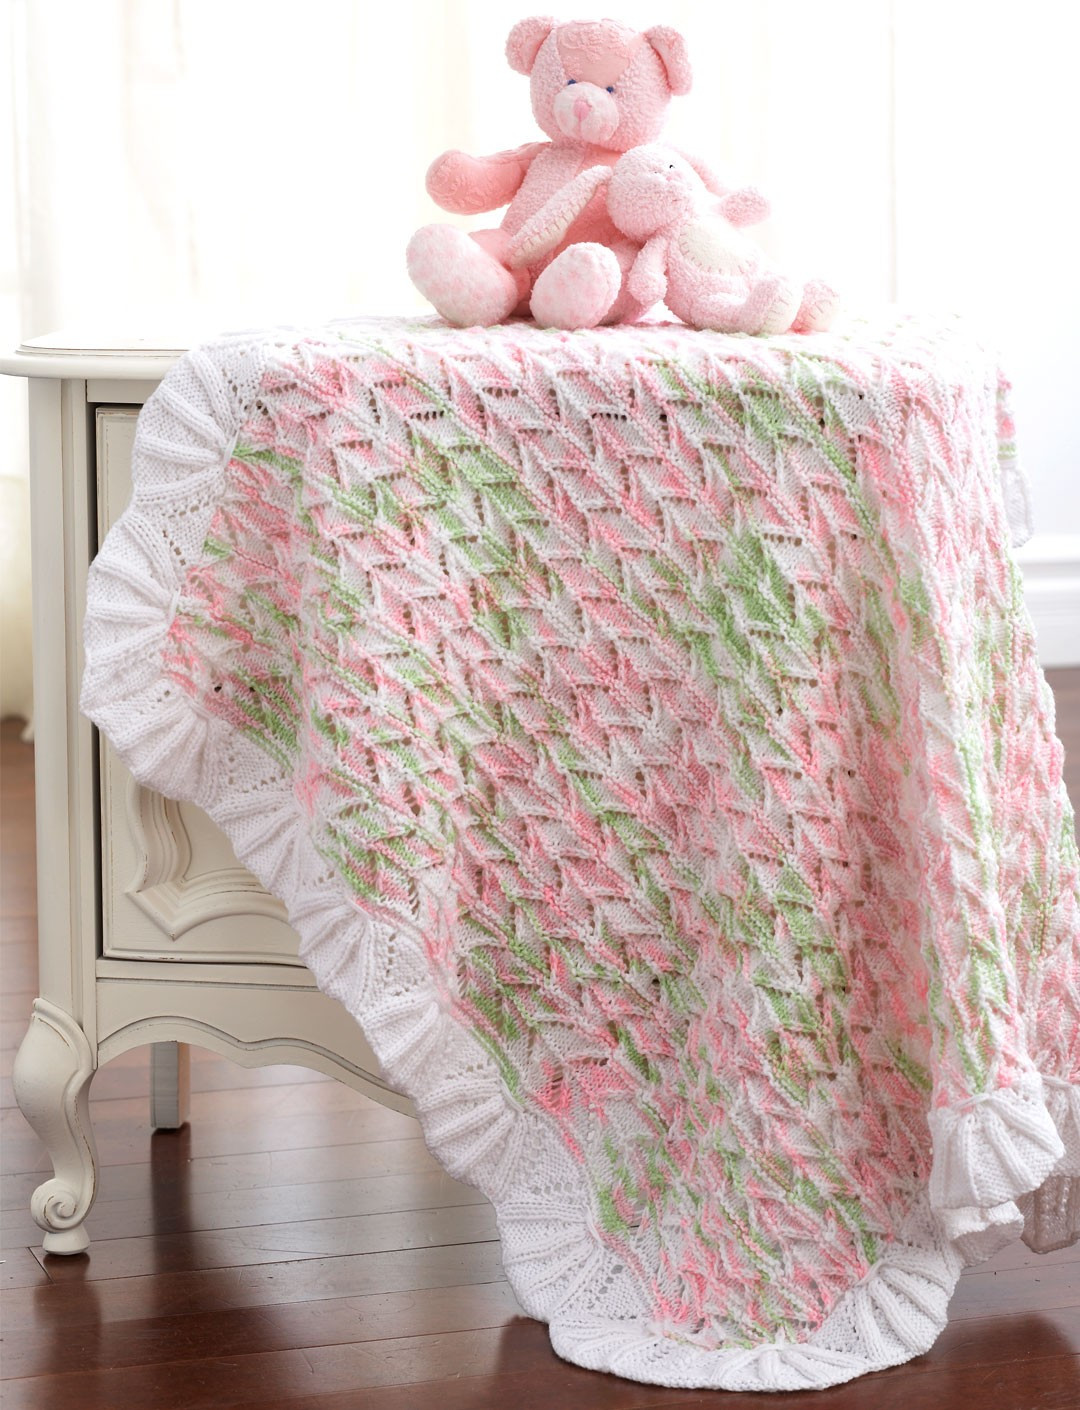 A some Baby Blanket Knitting Patterns